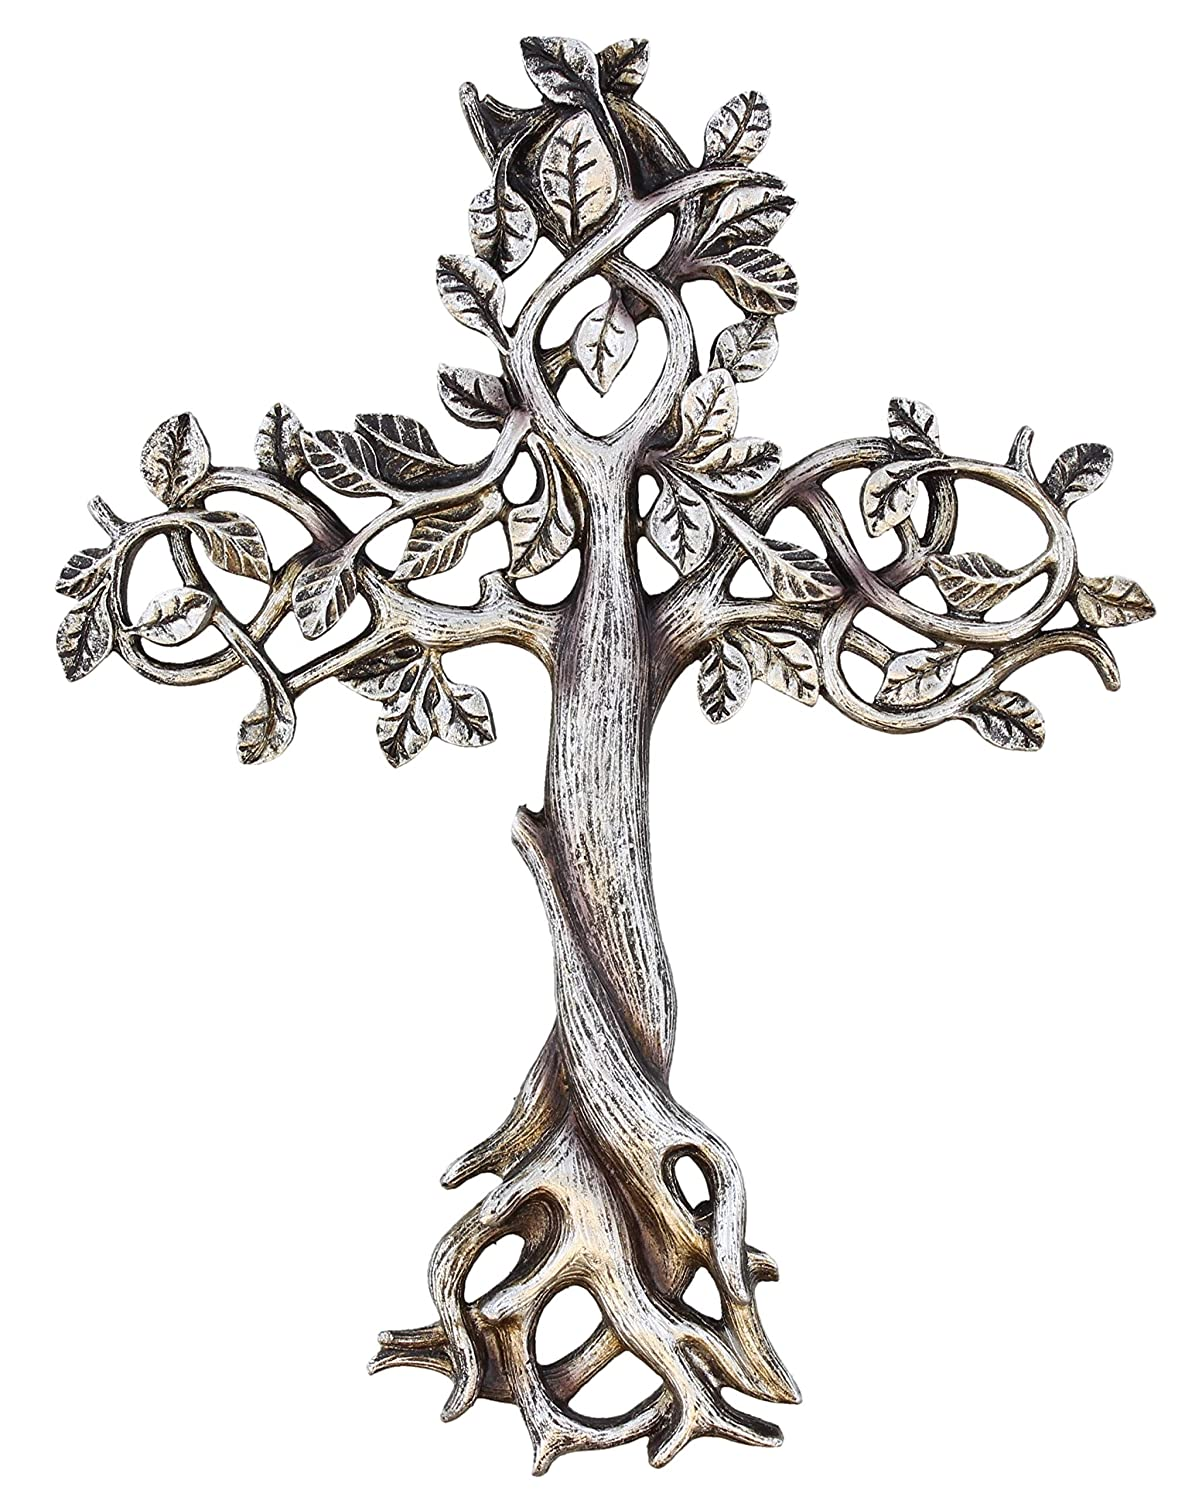 "Old River Outdoors Tree of Life Wall Cross 11 1/2"" - Decorative Spiritual Art Sculpture Antique Silver Finish"